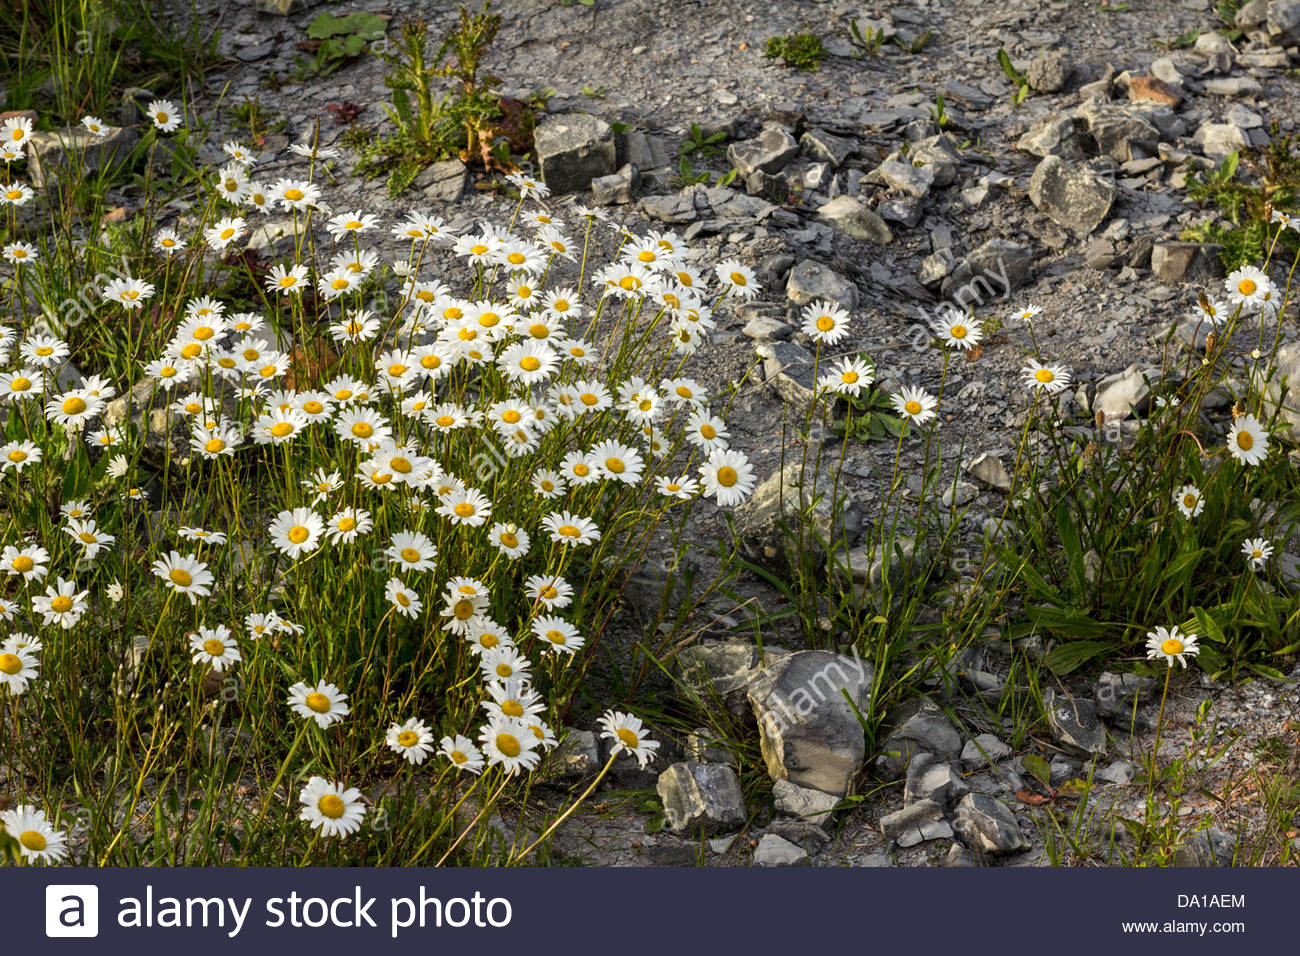 Wildflowers on wasteland - Stock Image